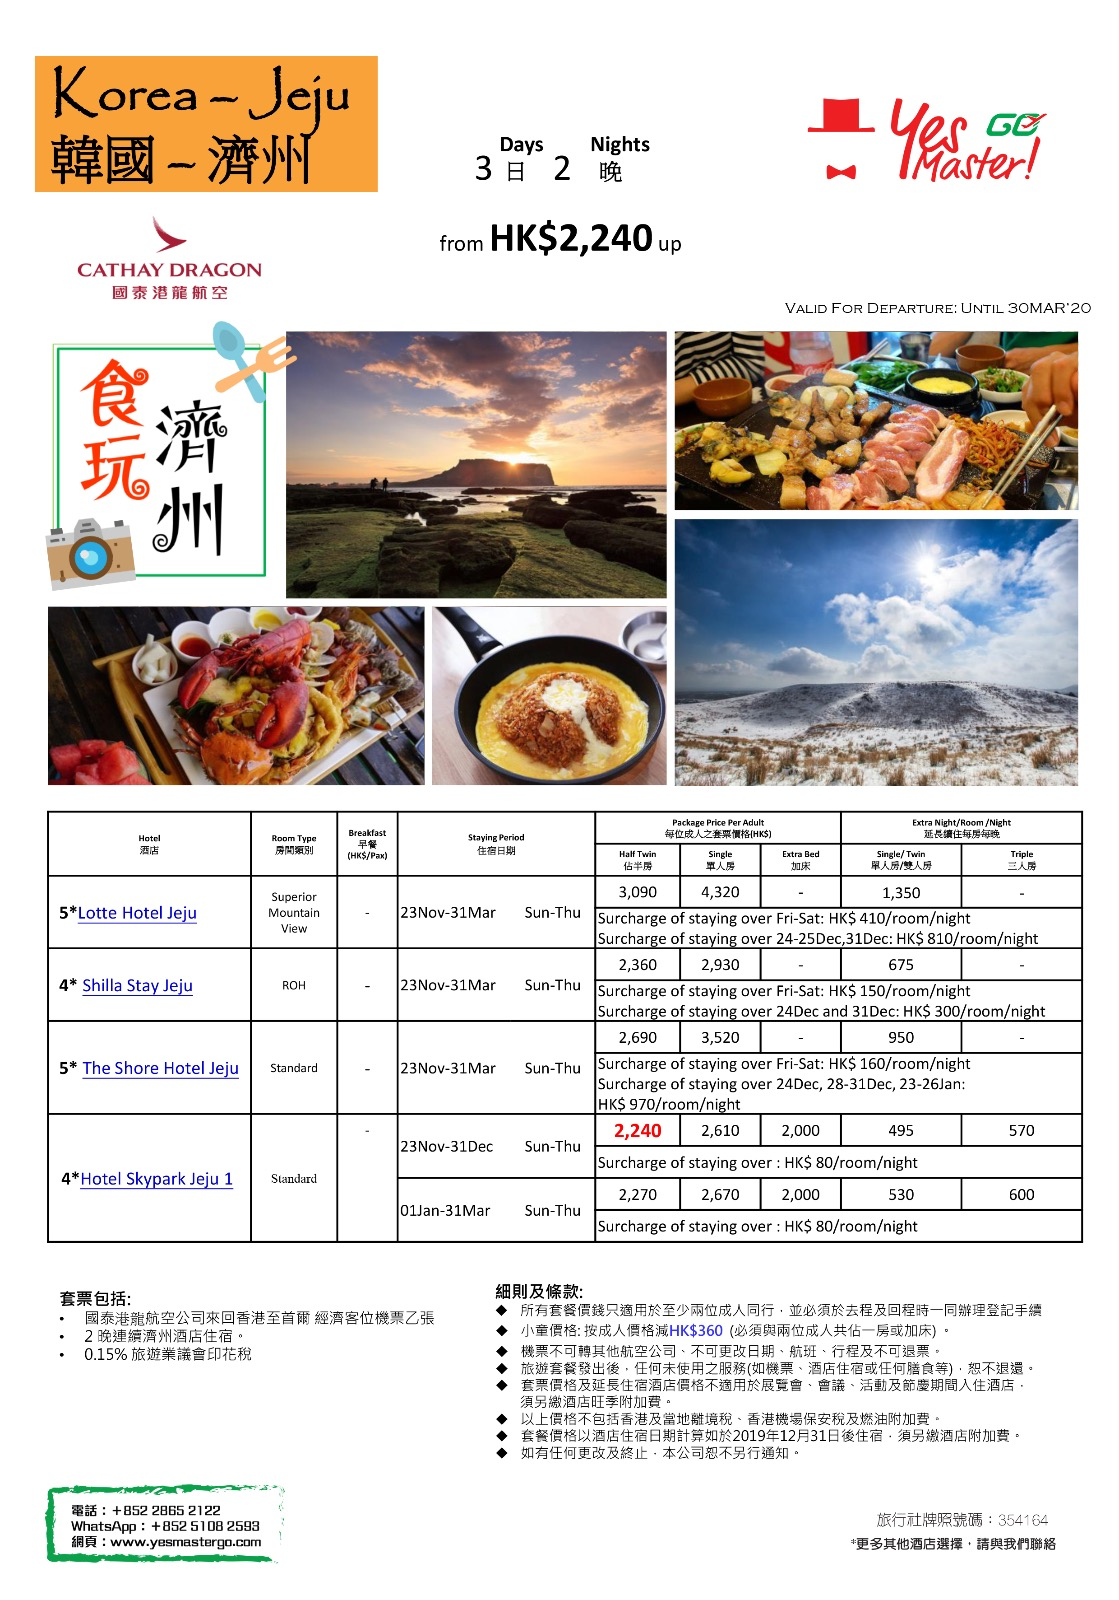 Korea - Jeju 3 Days 2 Nights